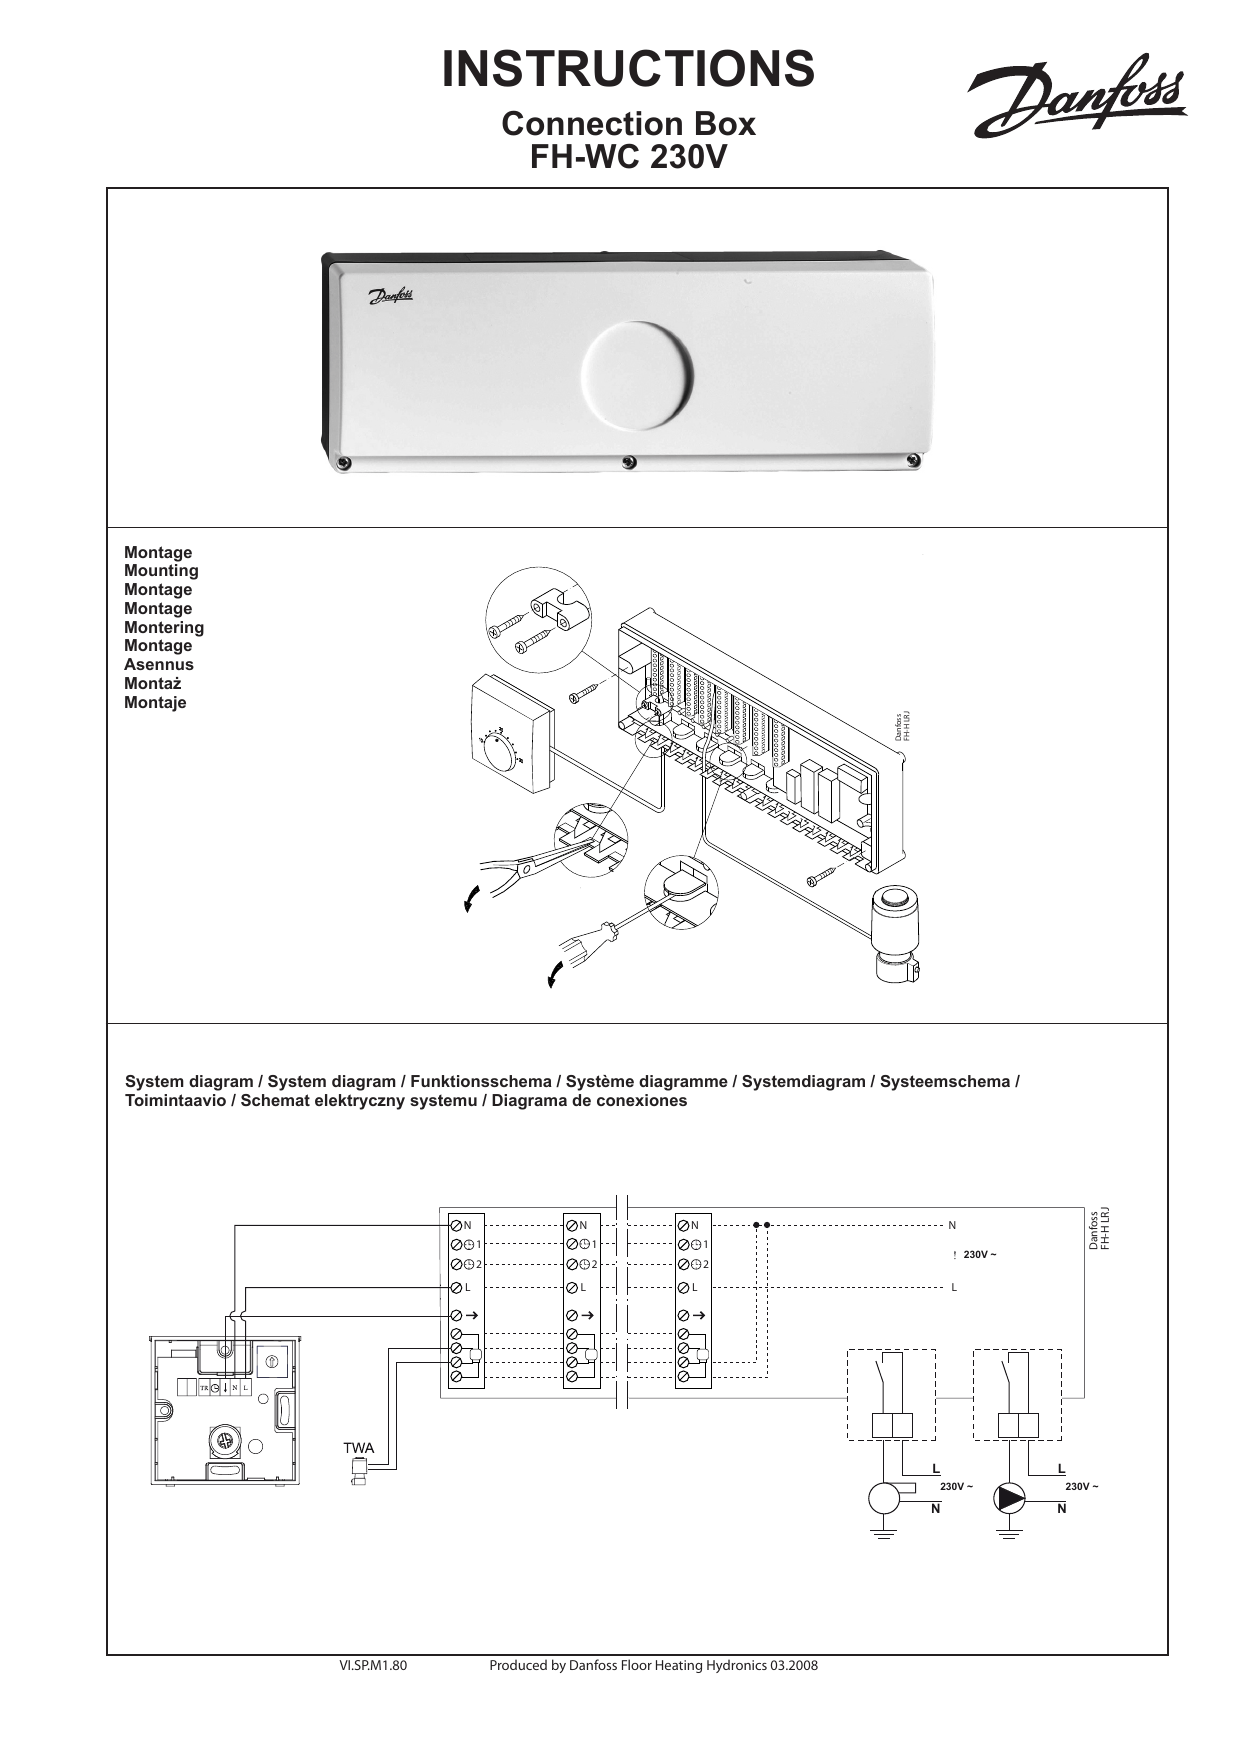 Danfoss FH-WC Connection Box 230 V Installation Guide